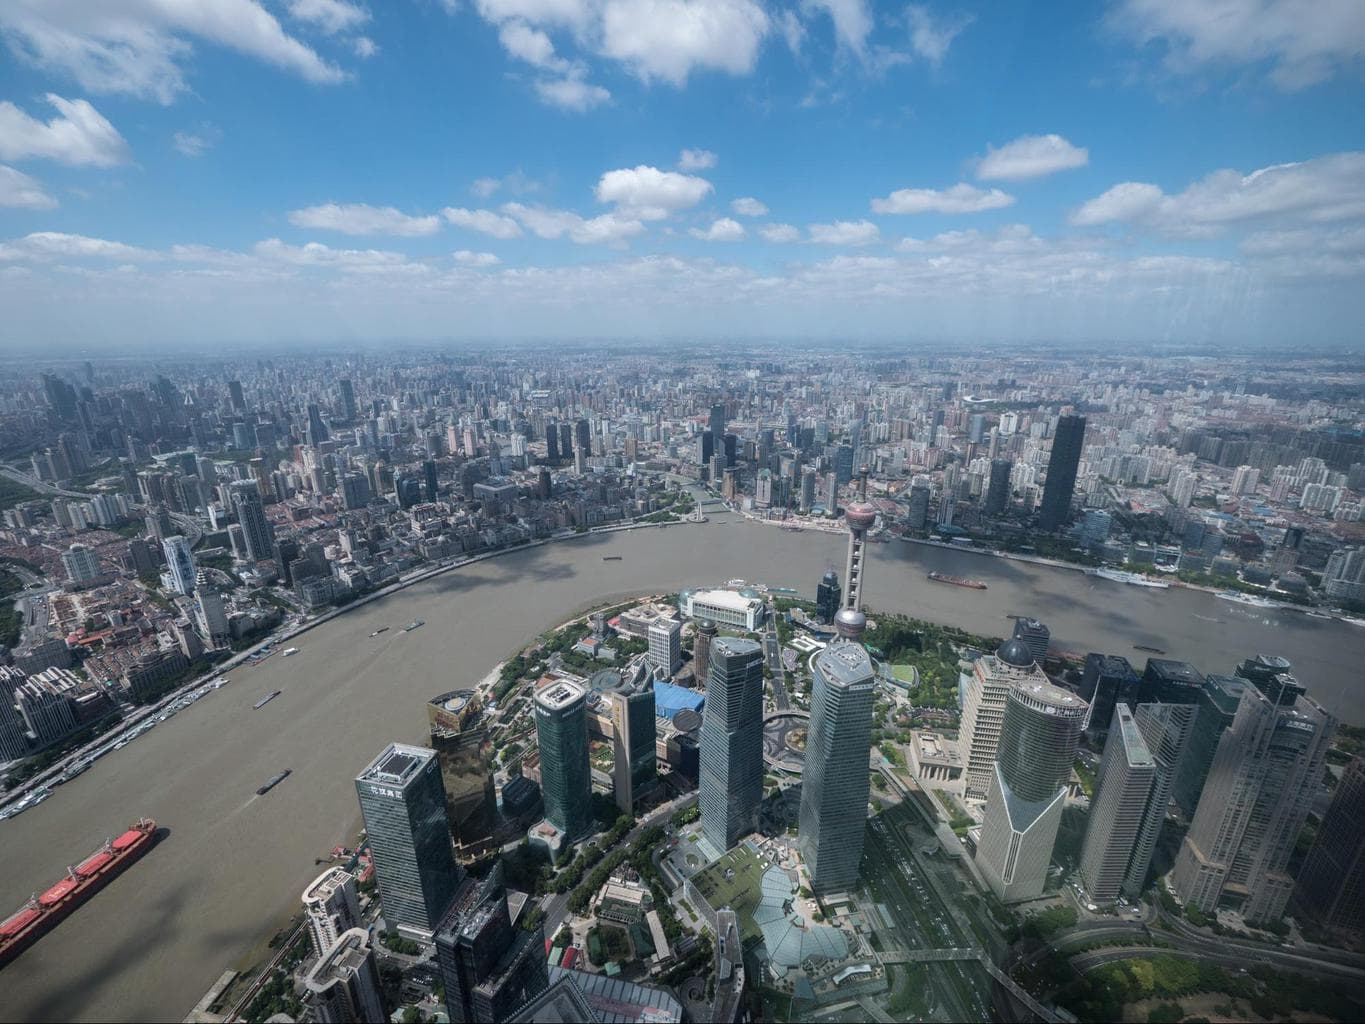 The views from the top of the Shanghai Tower